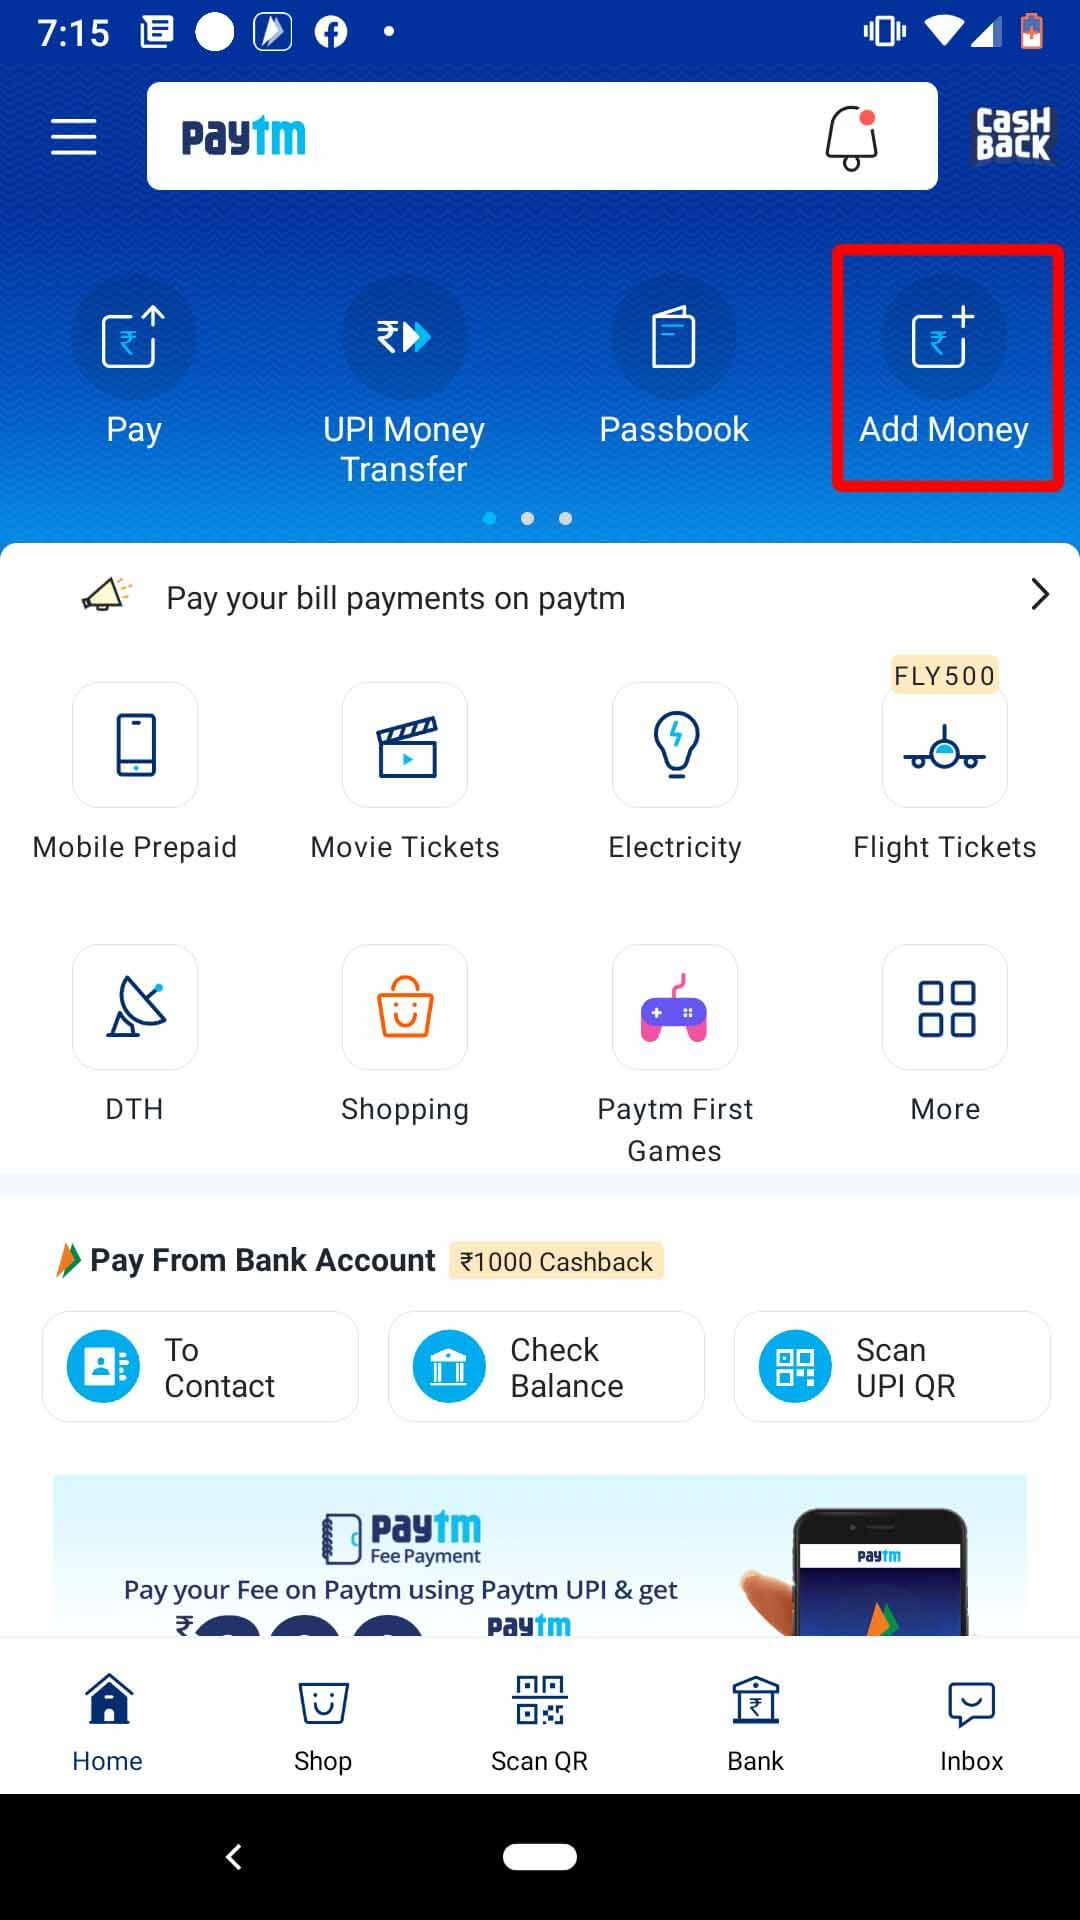 Add Money to Your Paytm